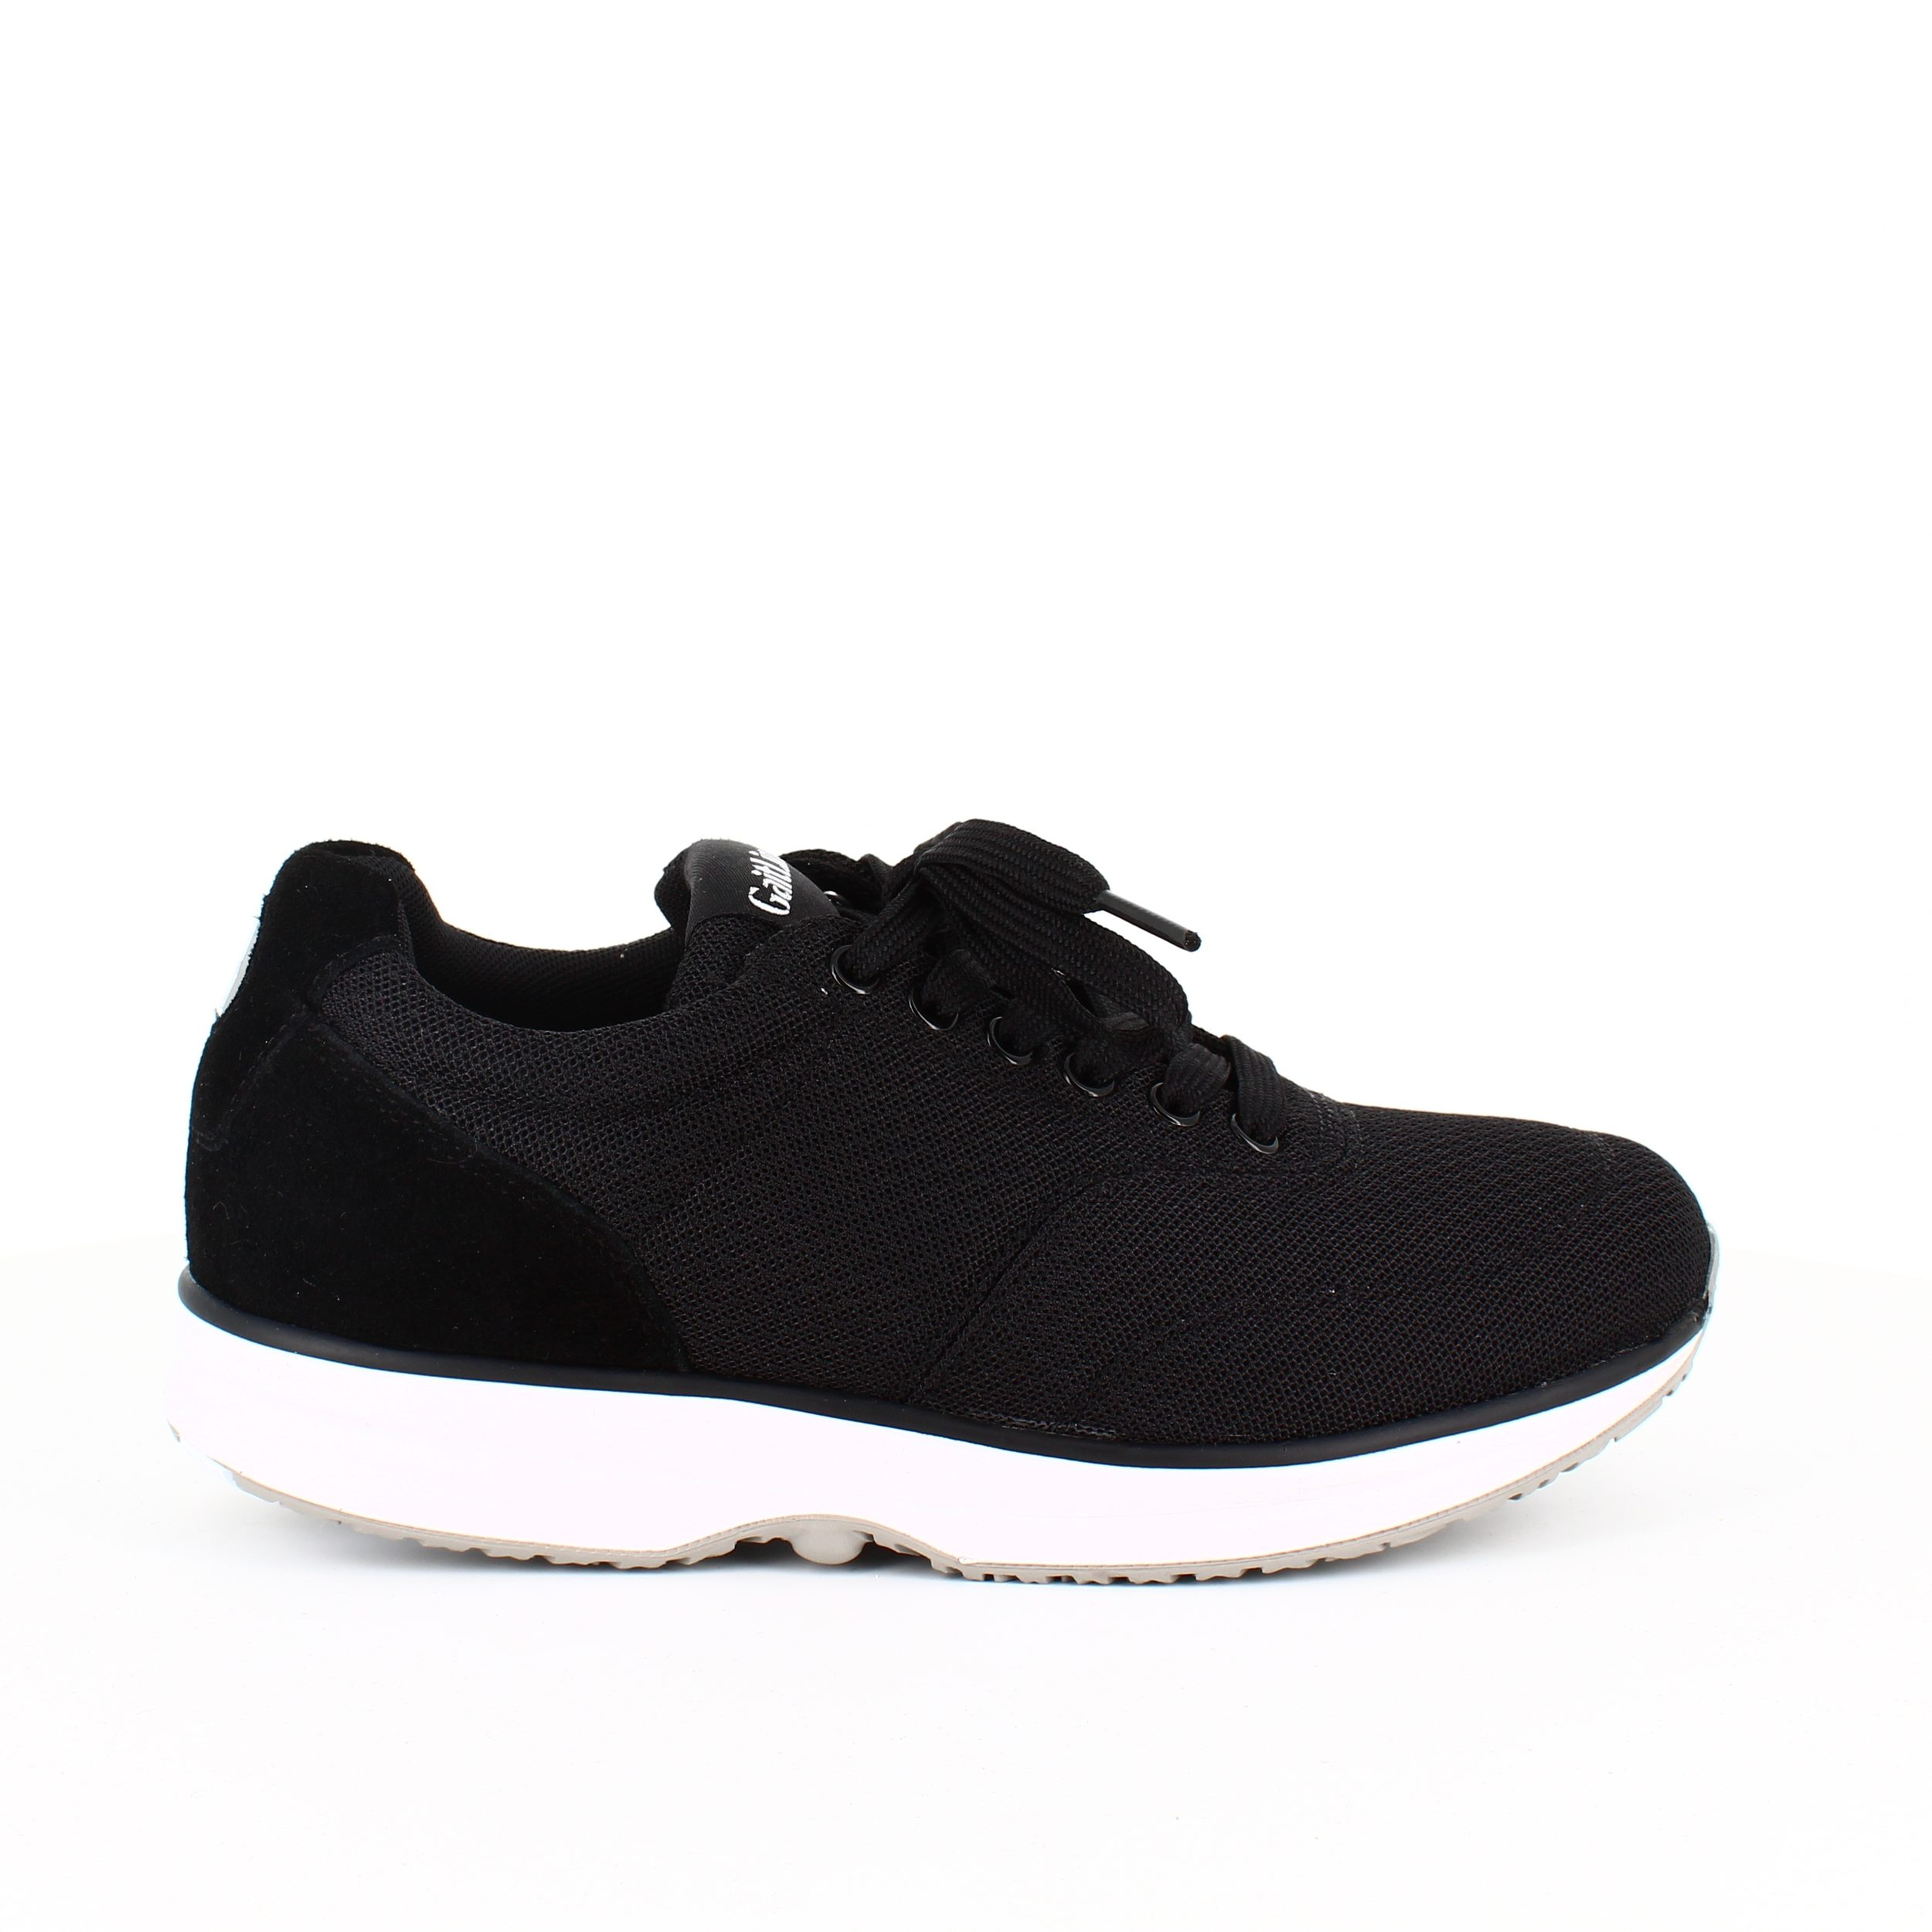 Image of   Flotte Sorte sneakers fra Gaitline - 42